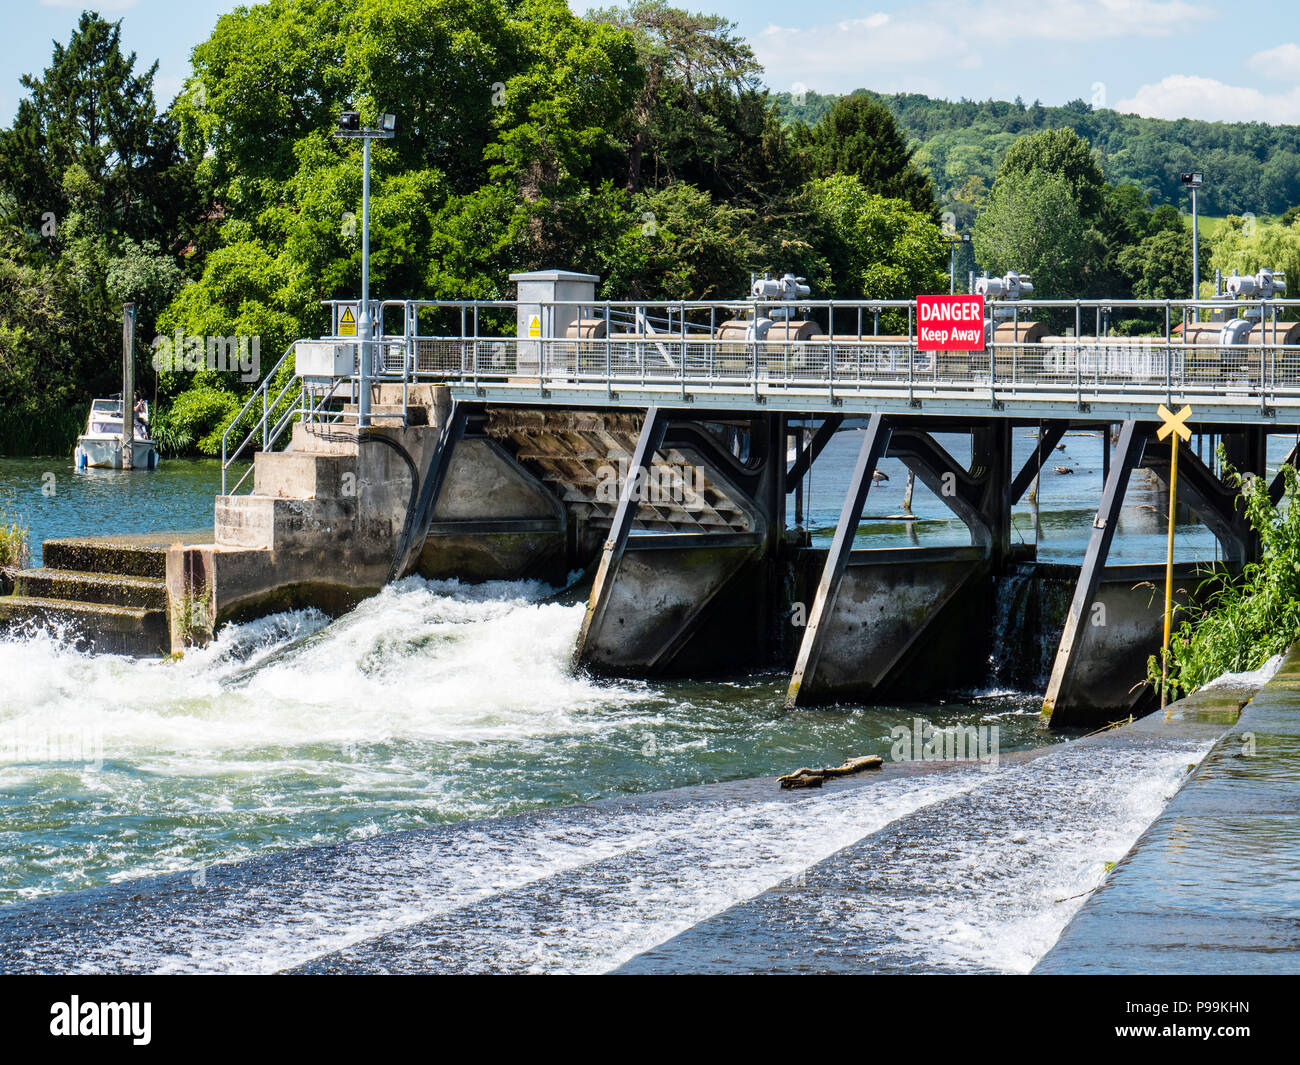 Flood Control, Hambleden Lock and Weir, River Thames, Berkshire, England, UK, GB. - Stock Image